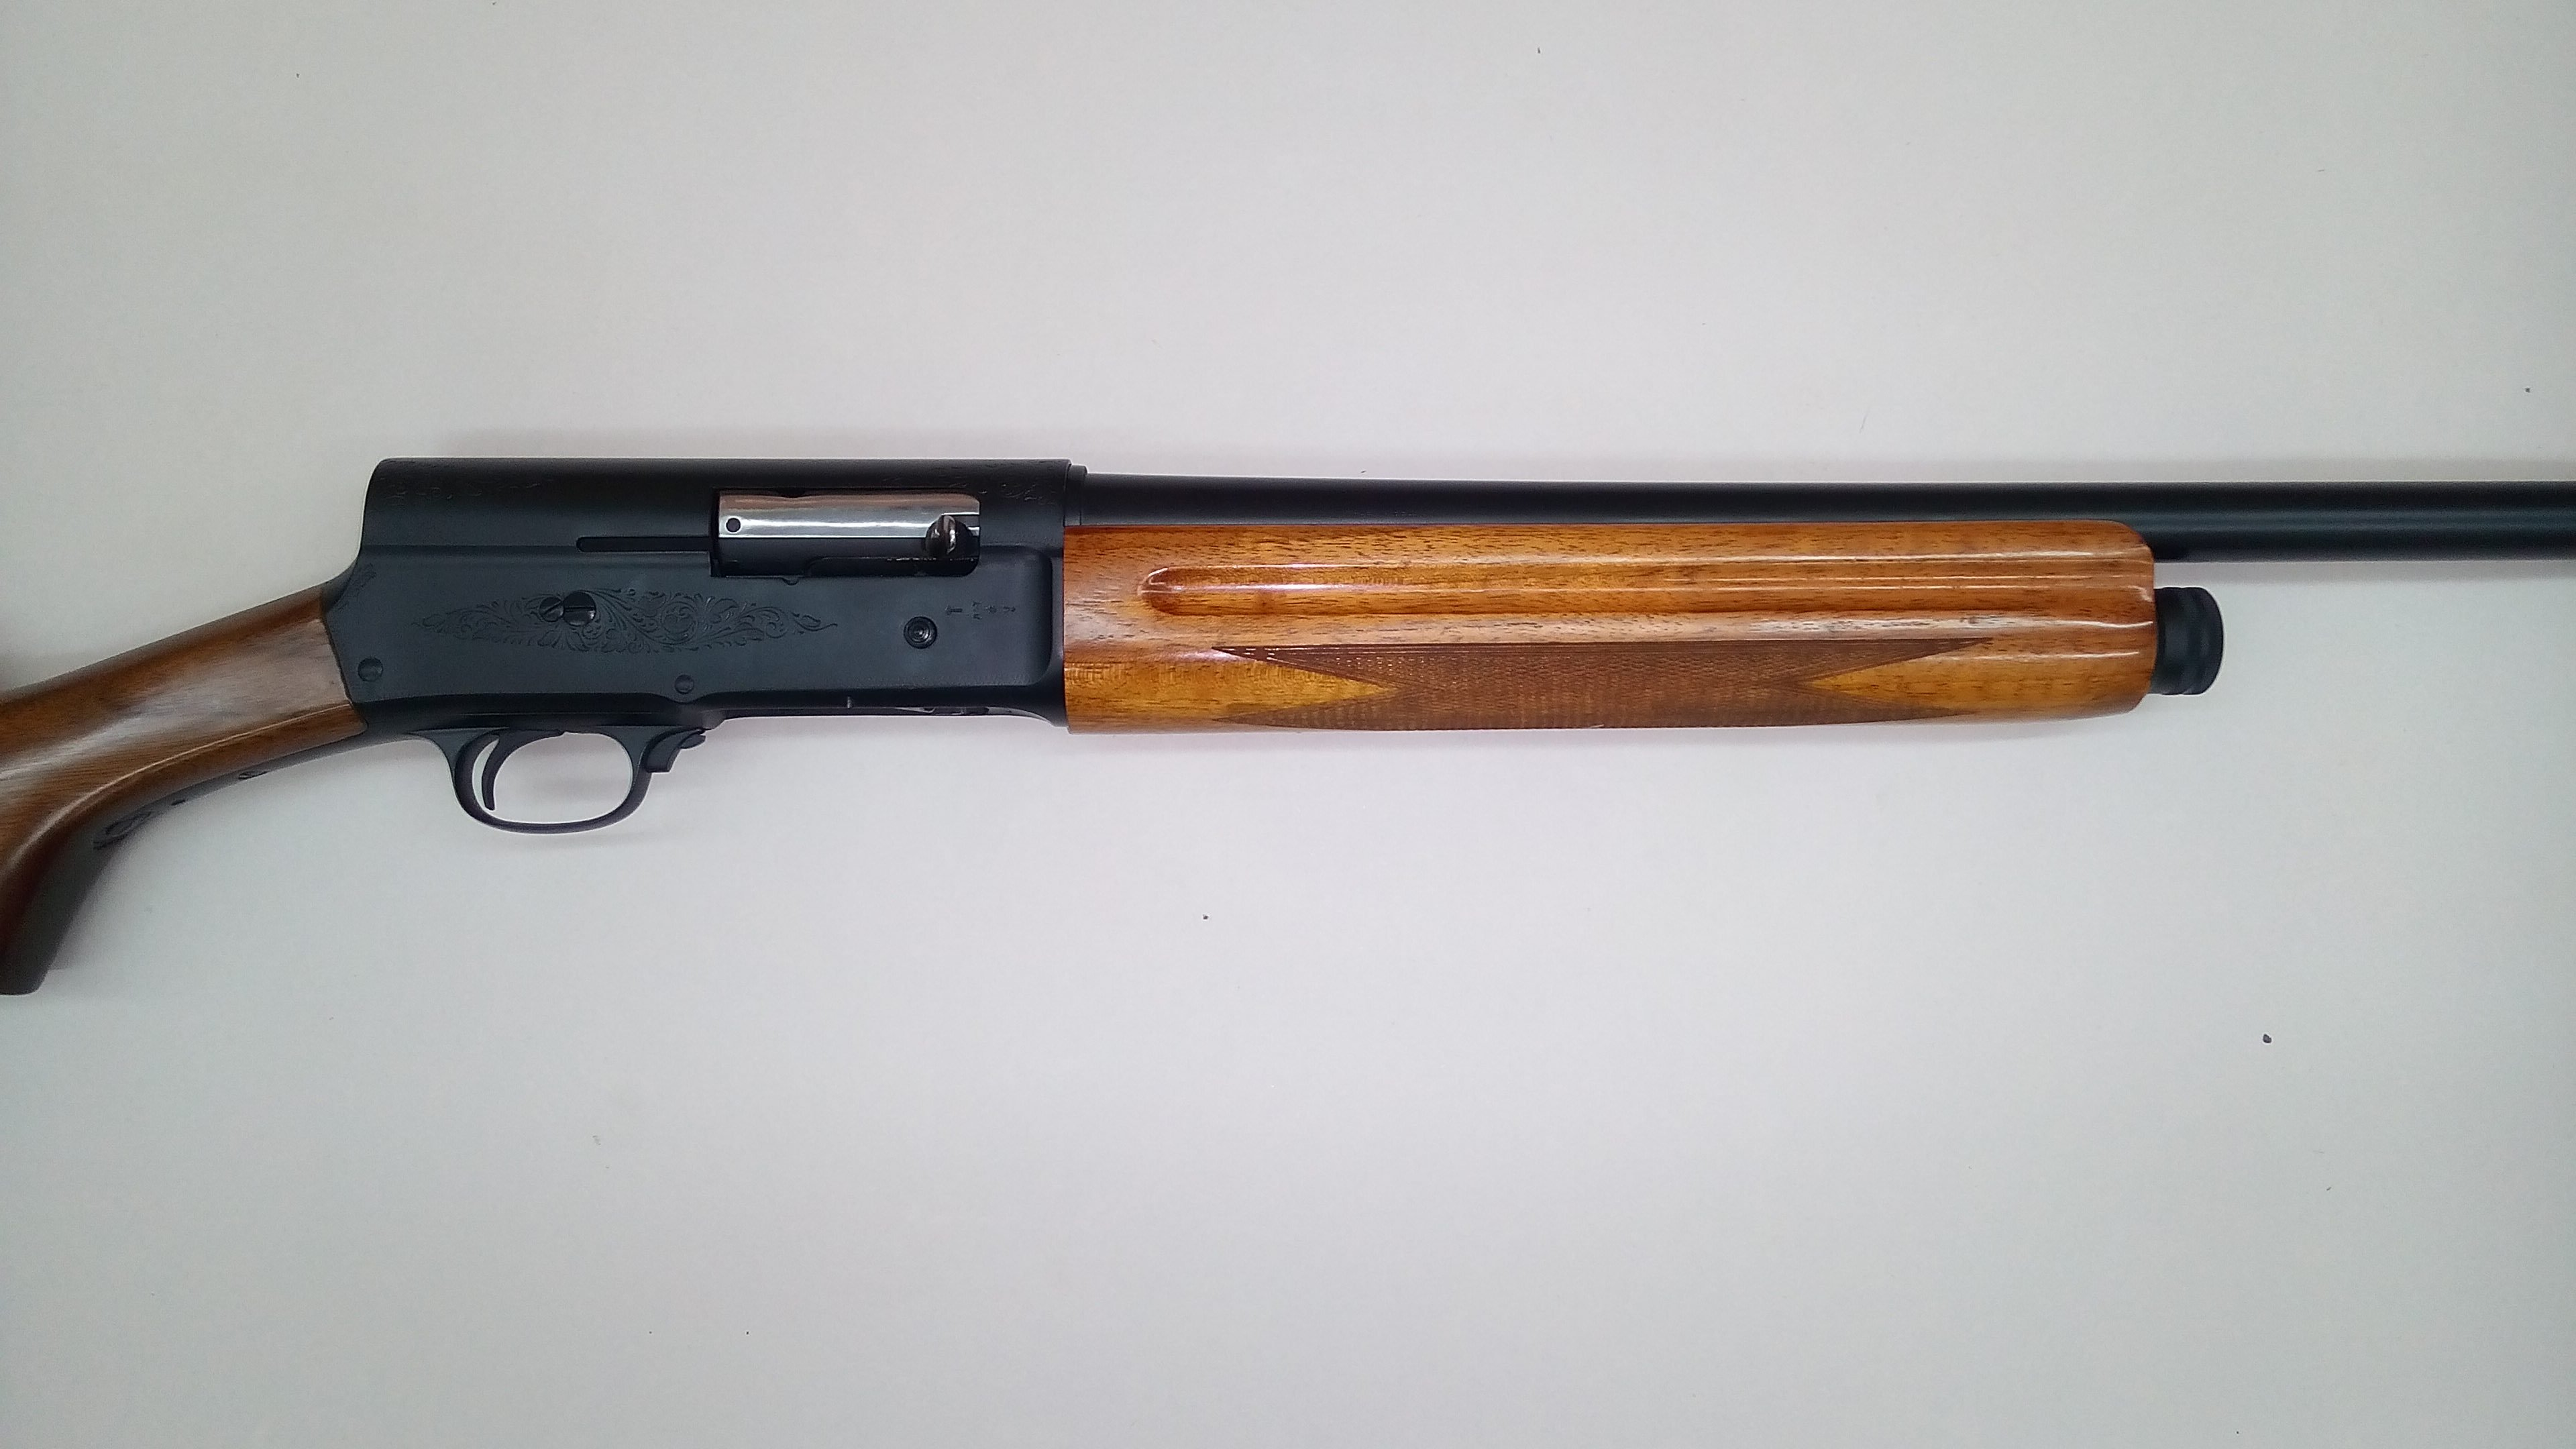 Browning a5 forearm refinished with high gloss polyurethane